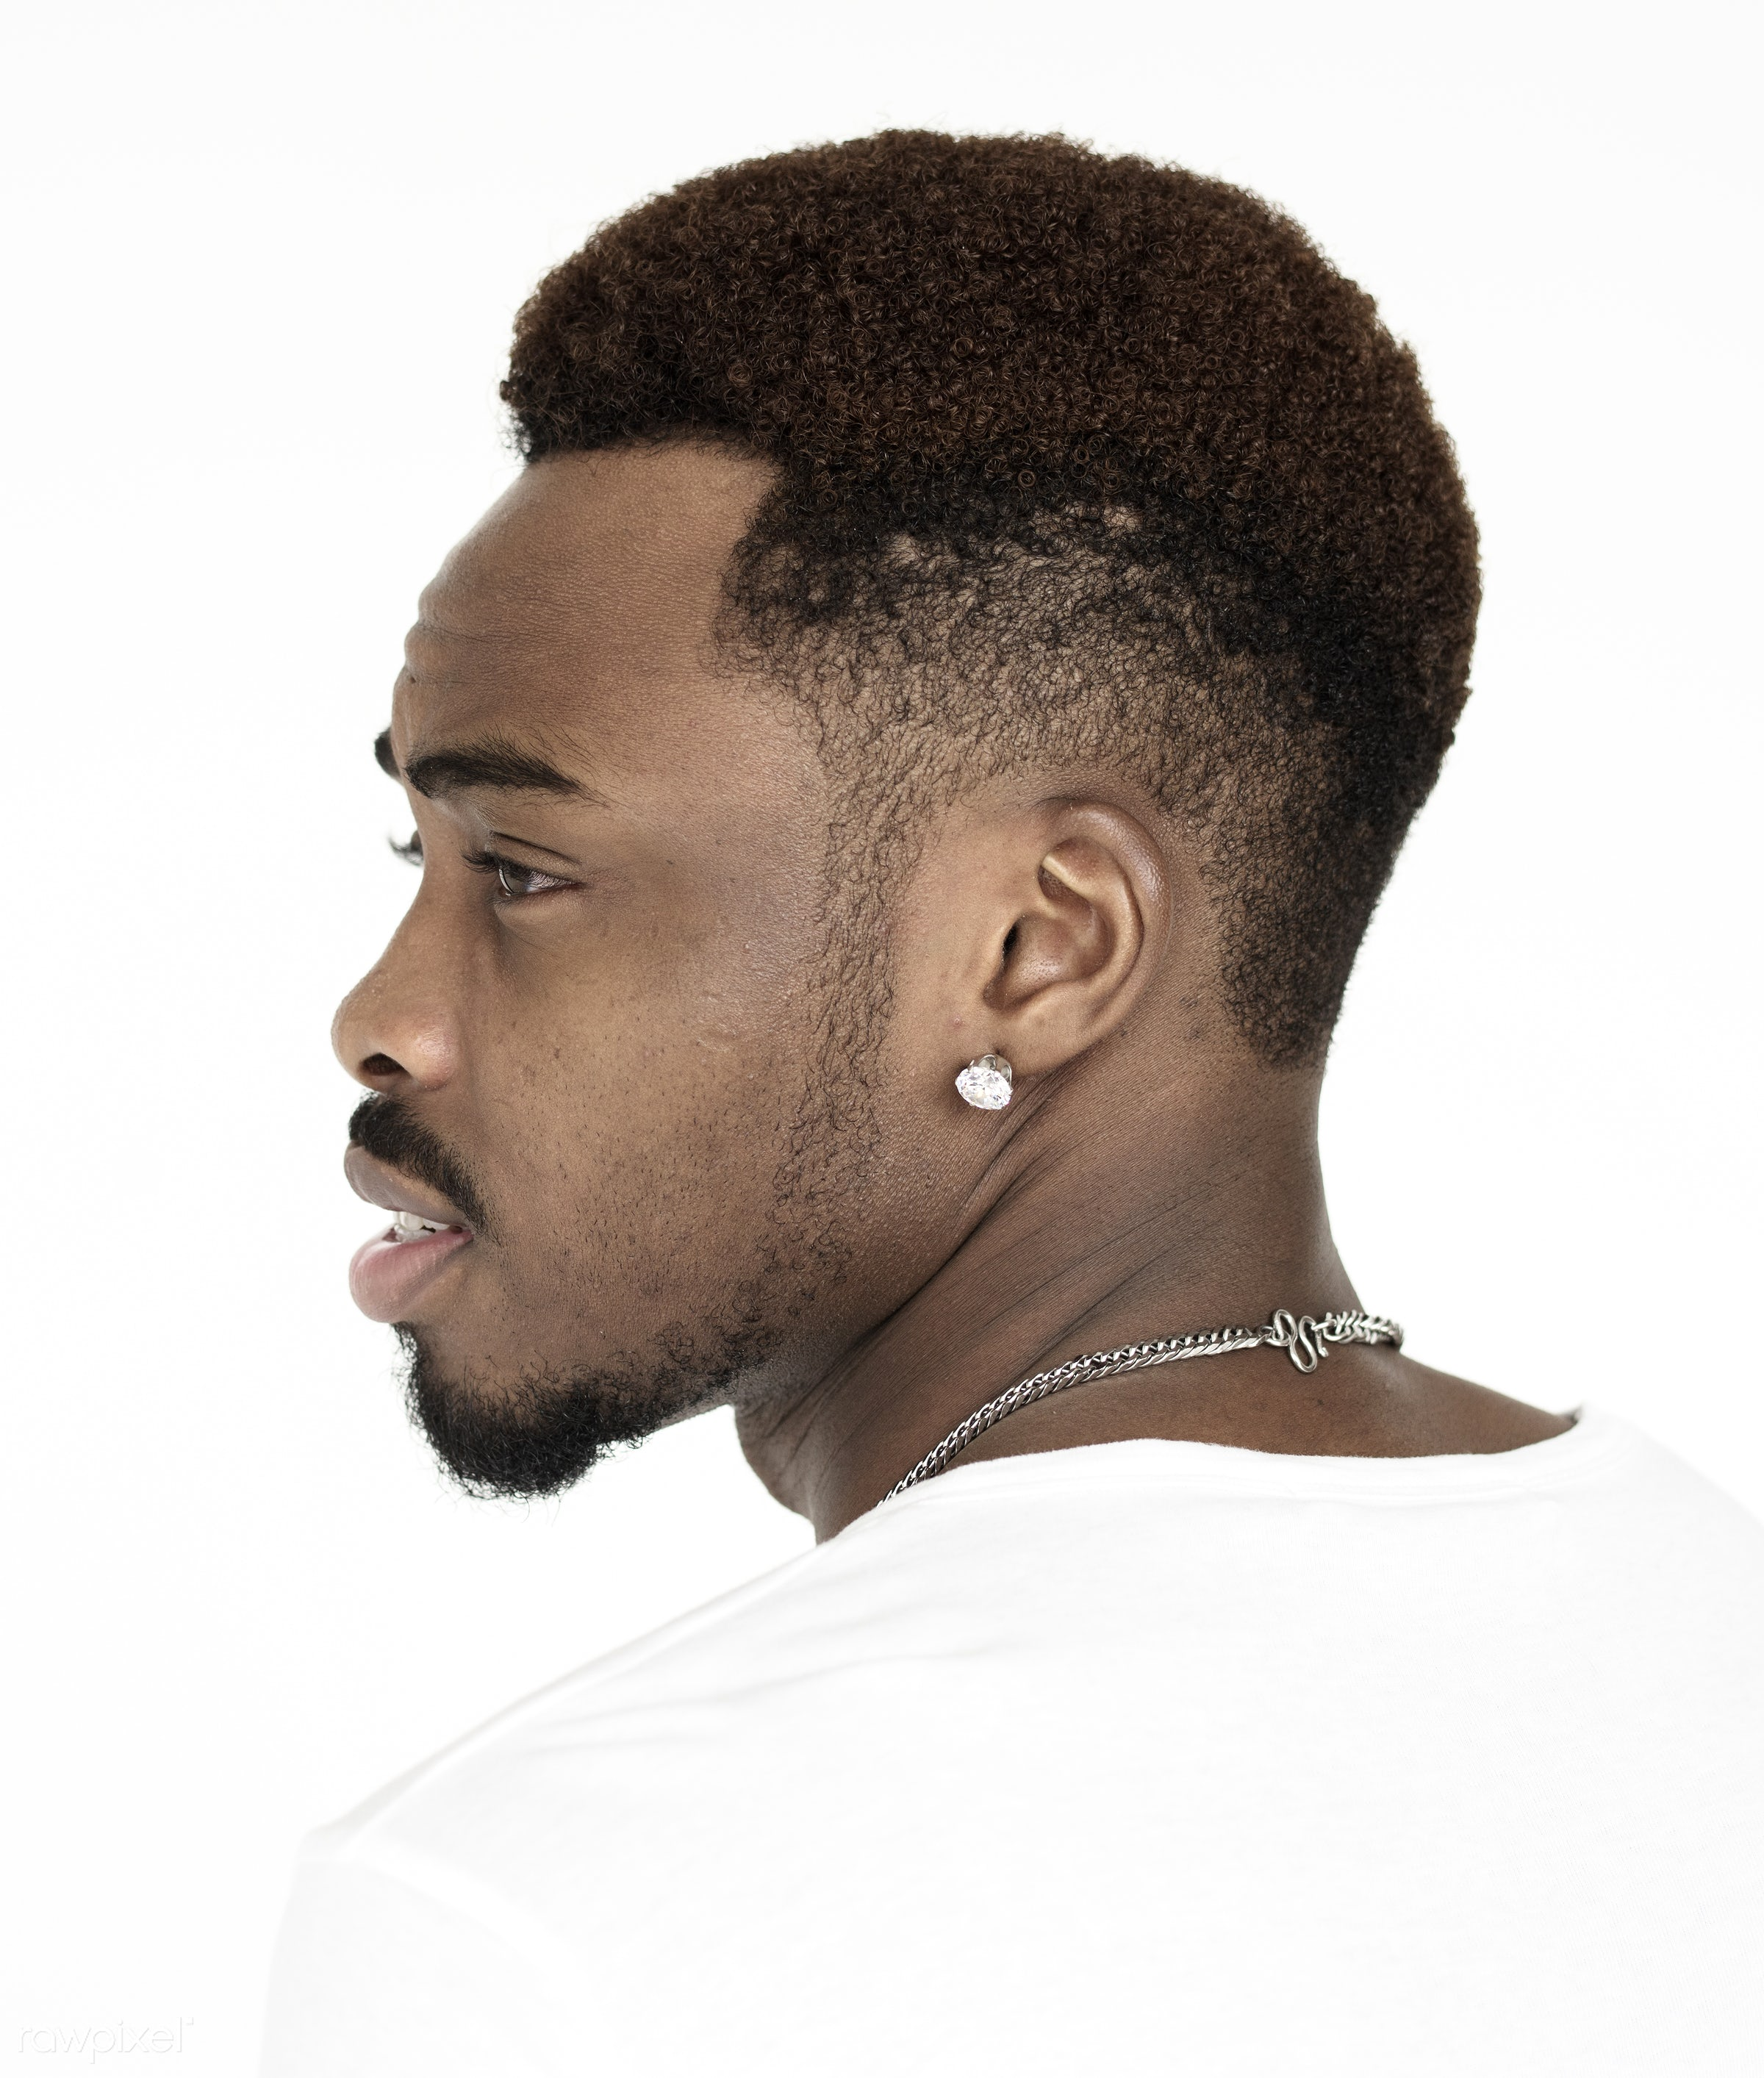 studio, person, one, people, race, style, lifestyle, casual, head, straight face, man, black, isolated, guy, tilt, african...